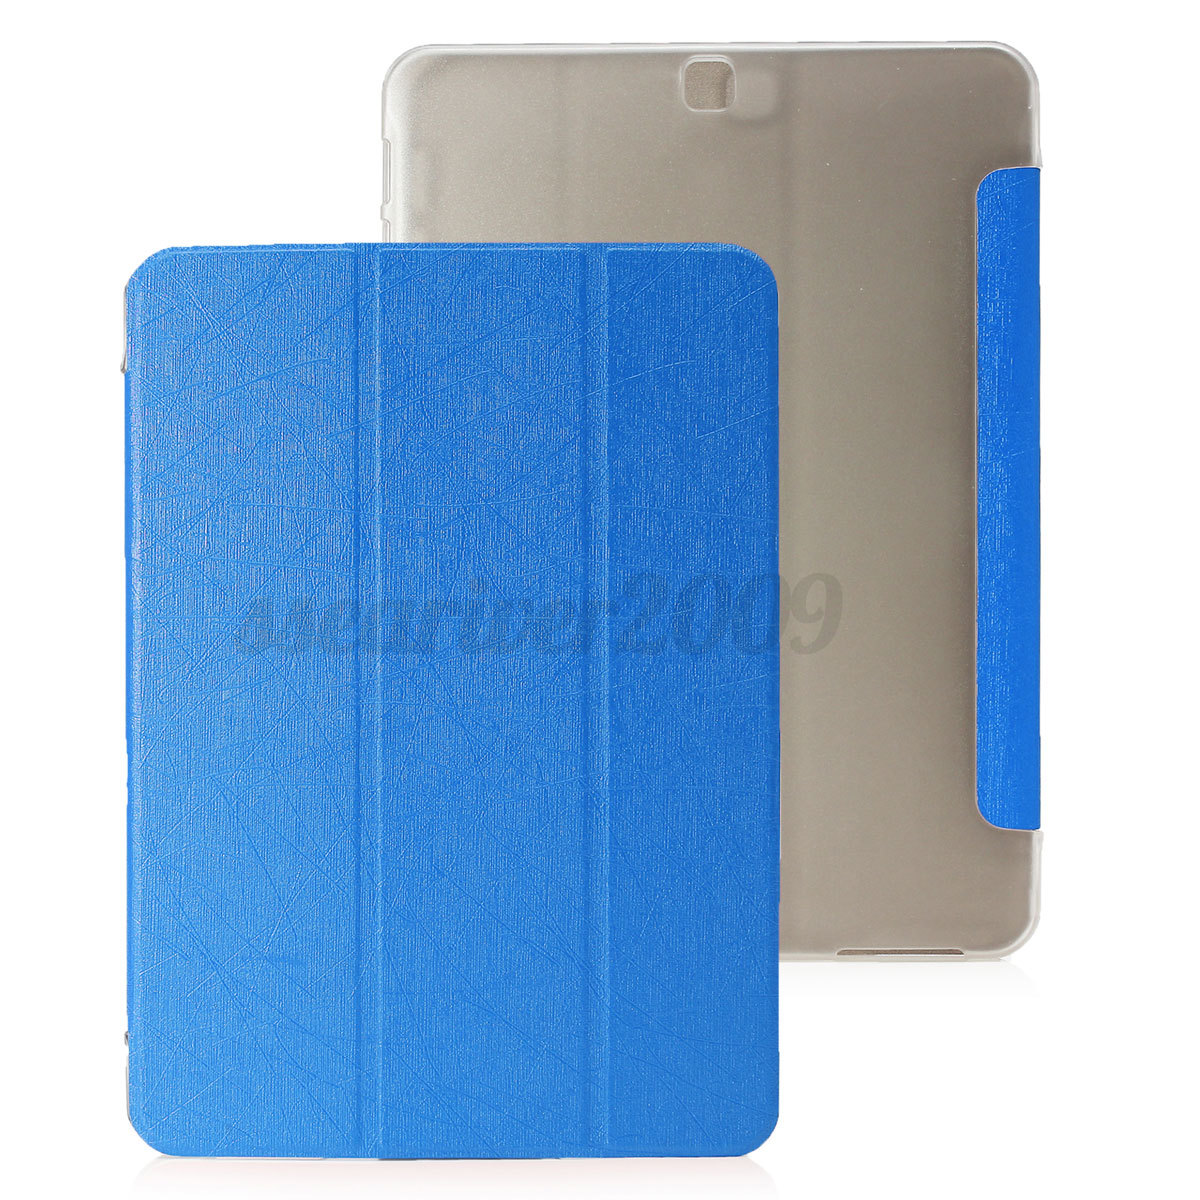 Housse tui slim cover case support cuir pu pr samsung for Housse samsung galaxy s2